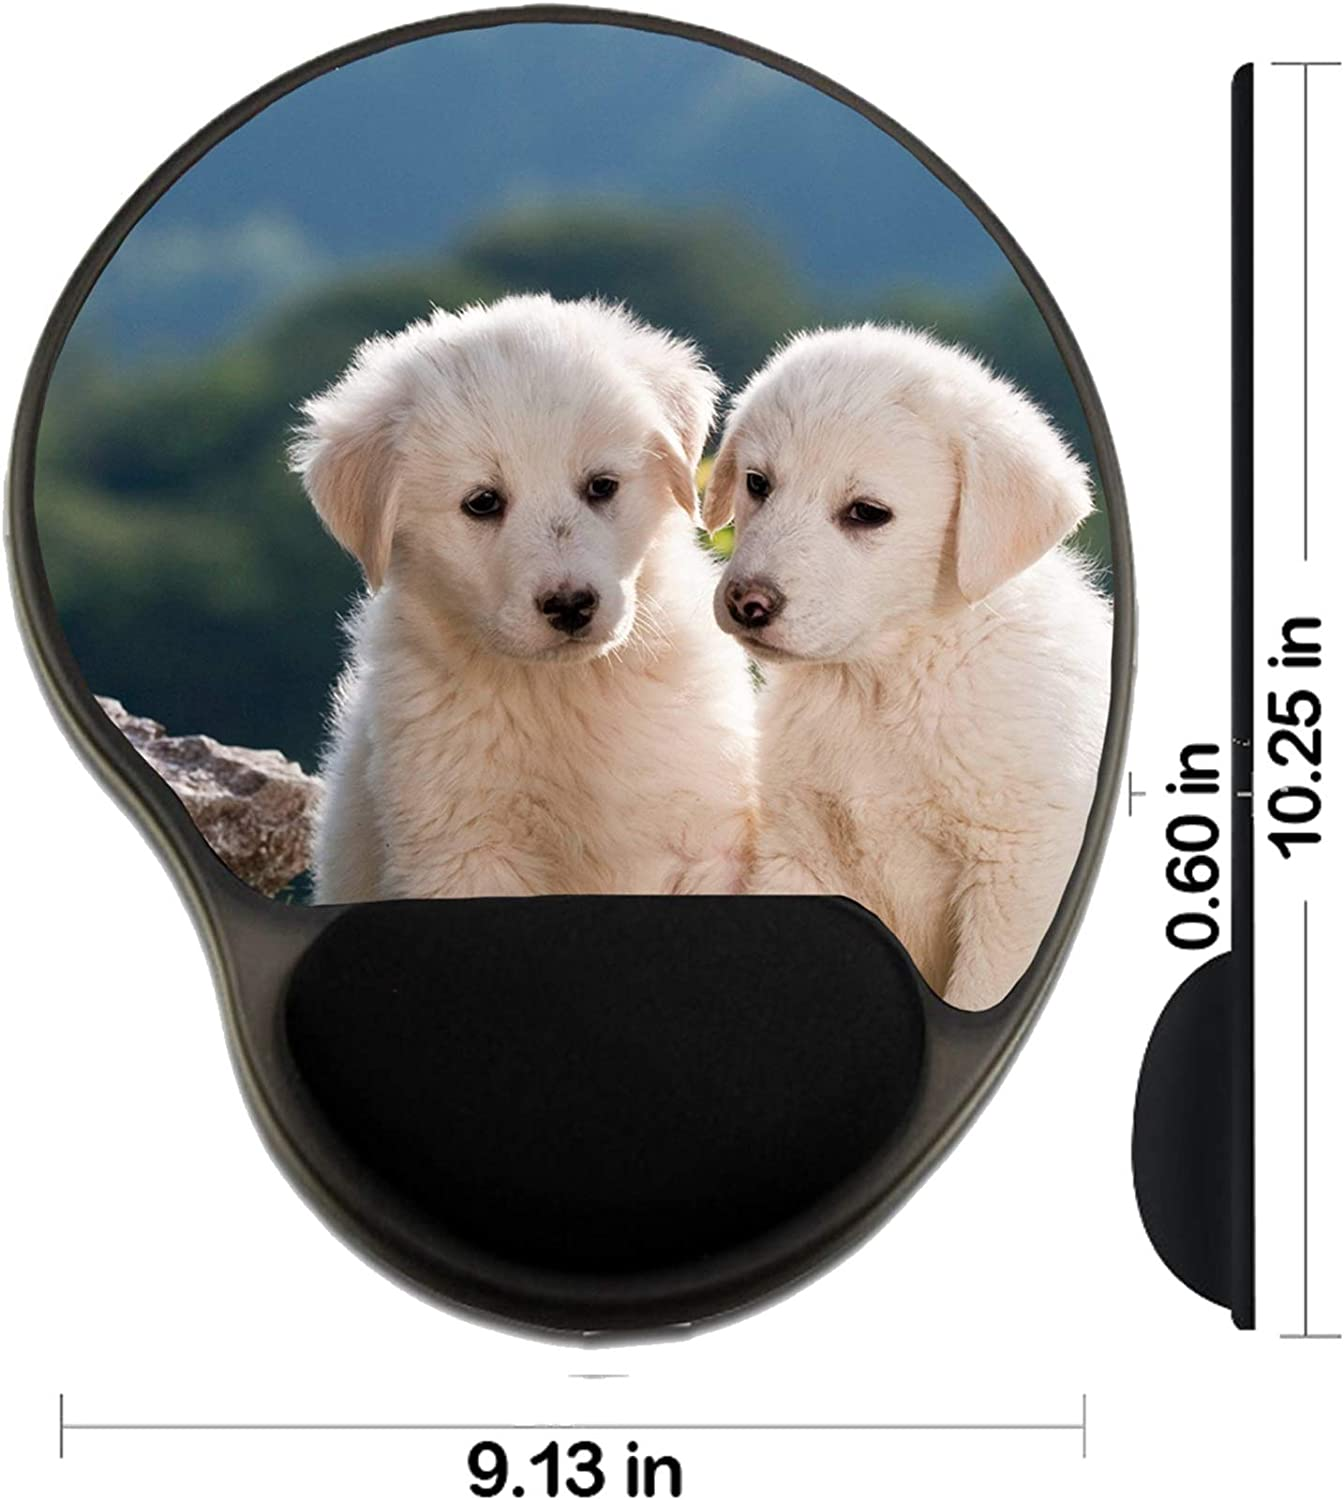 MSD Mousepad Wrist Rest Protected Mouse Pads 23046733 Puppy Shepherd Dog on The Background Image ID Mat with Wrist Support